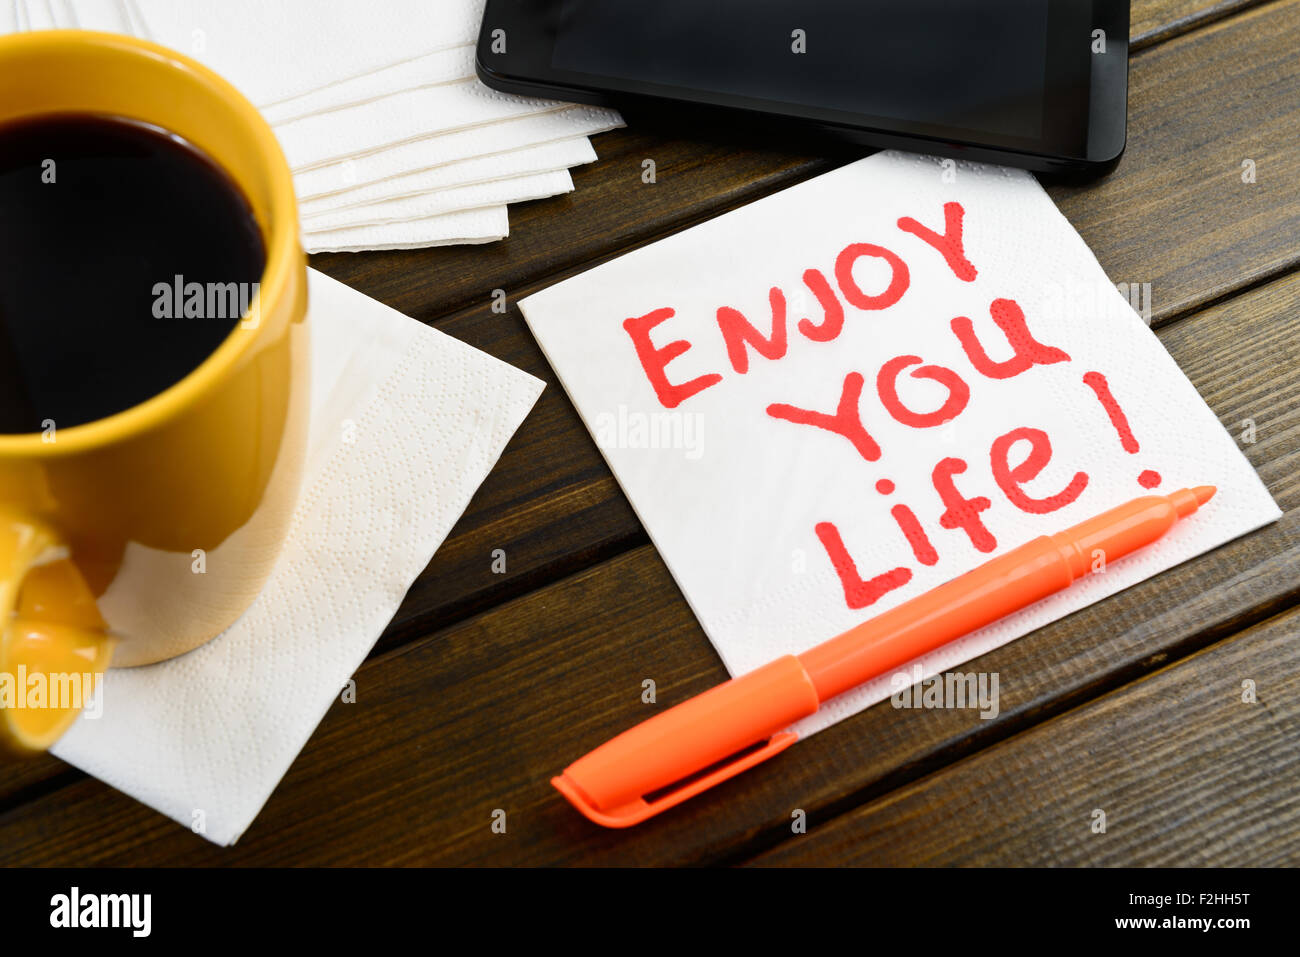 Enjoy your life writing on white napkin around coffee pen and phone on wooden table - Stock Image